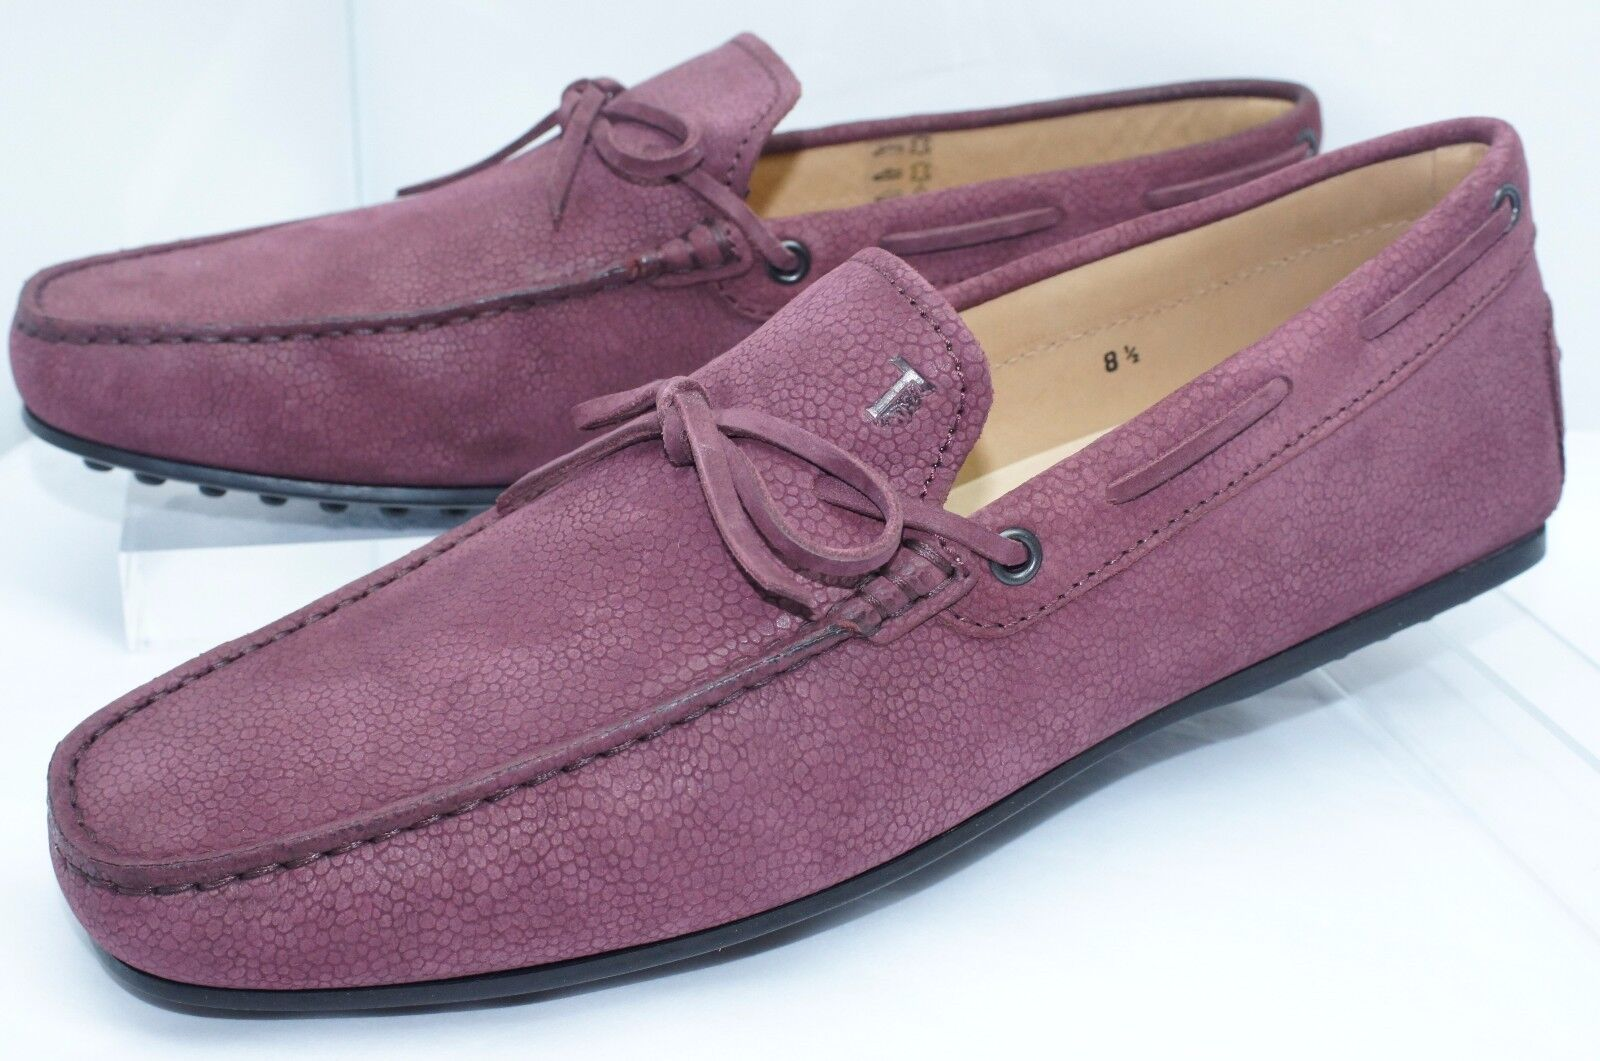 New Tod's Men's Red shoes Lace Mocassin Size 8.5 Loafers Drivers Purple Suede